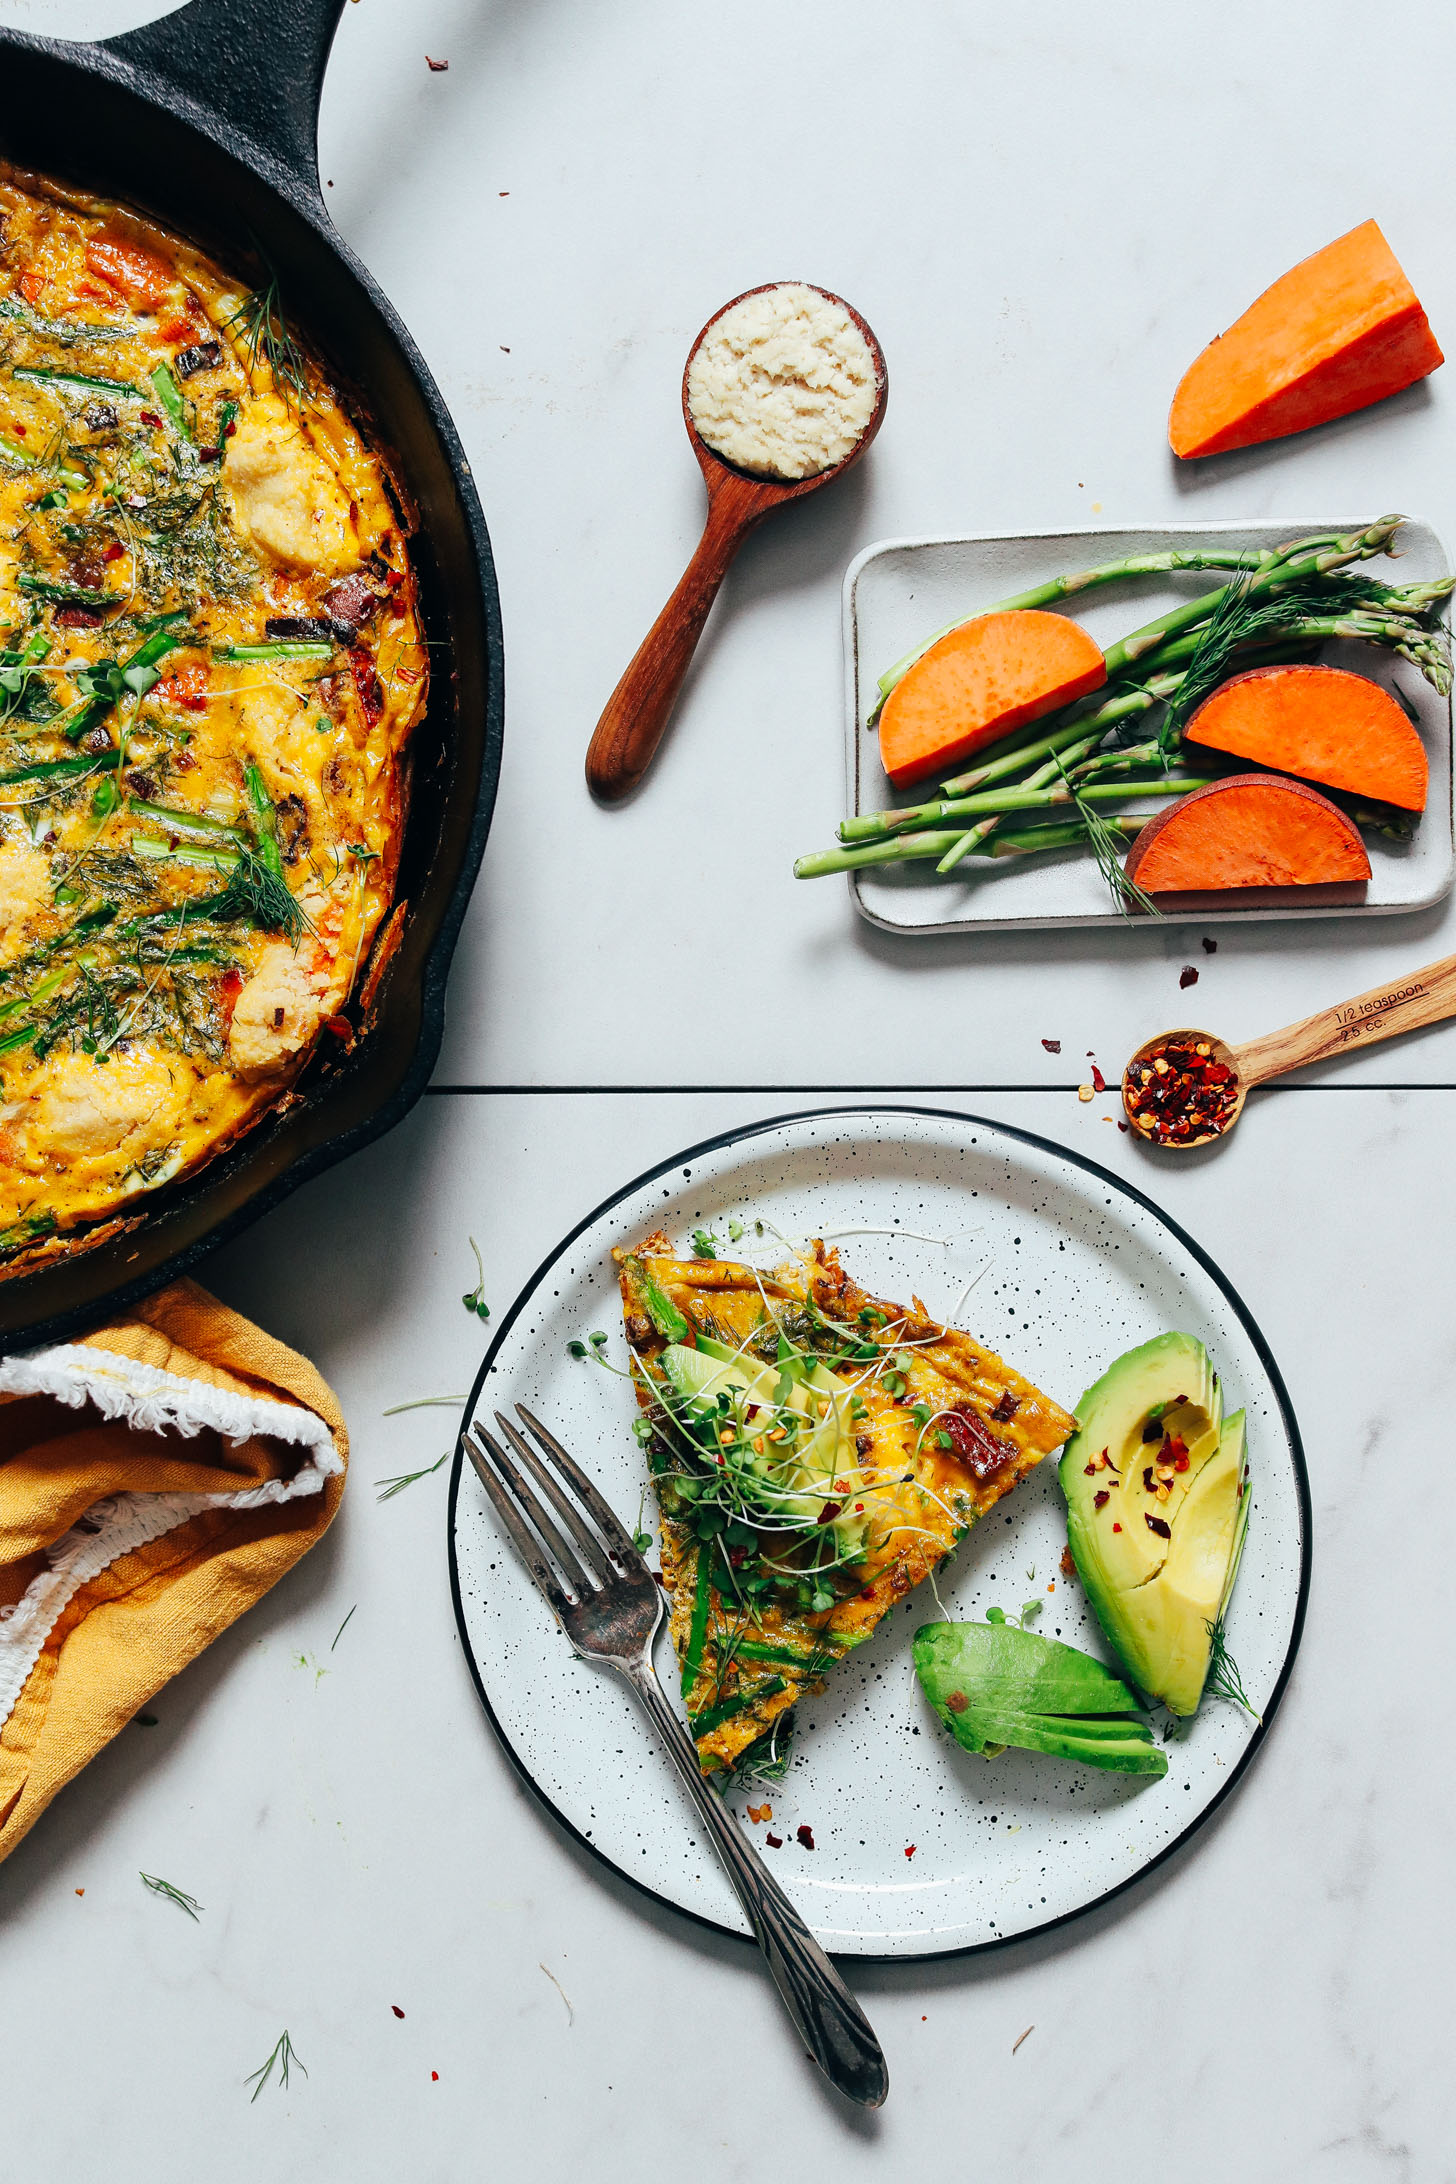 Skillet and slice of our Spring Vegetable Frittata with the slice topped with avocado, red pepper flake, and microgreens